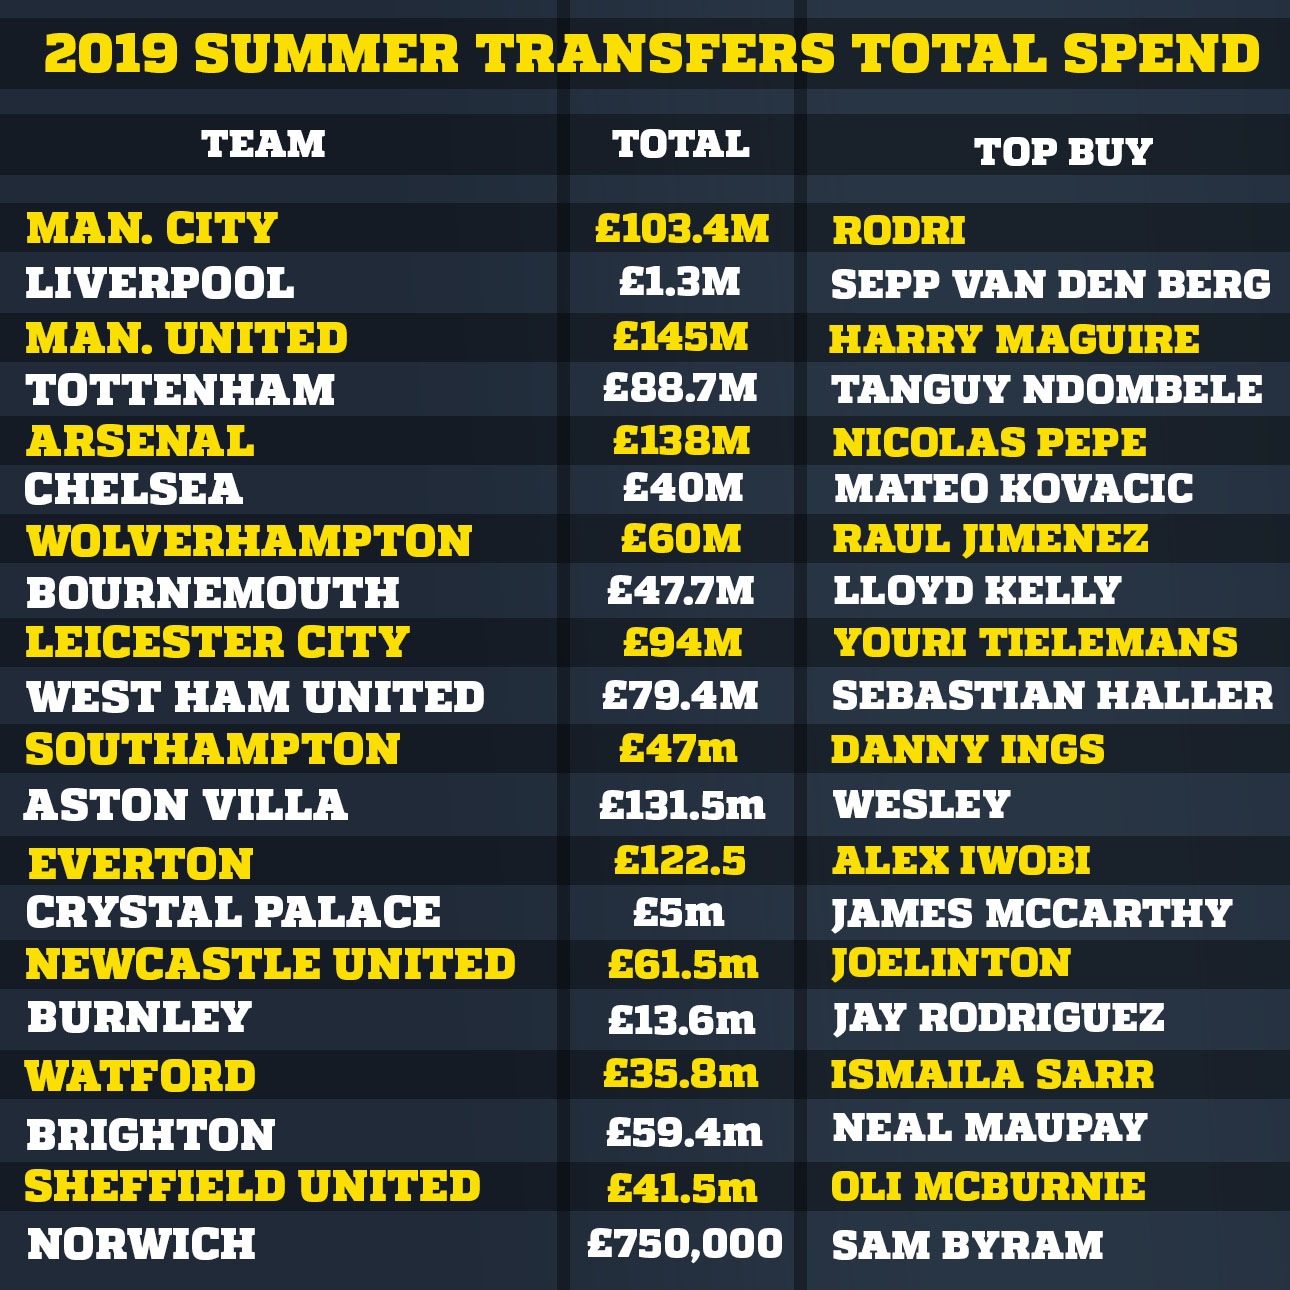 2019 summer transfers total spend